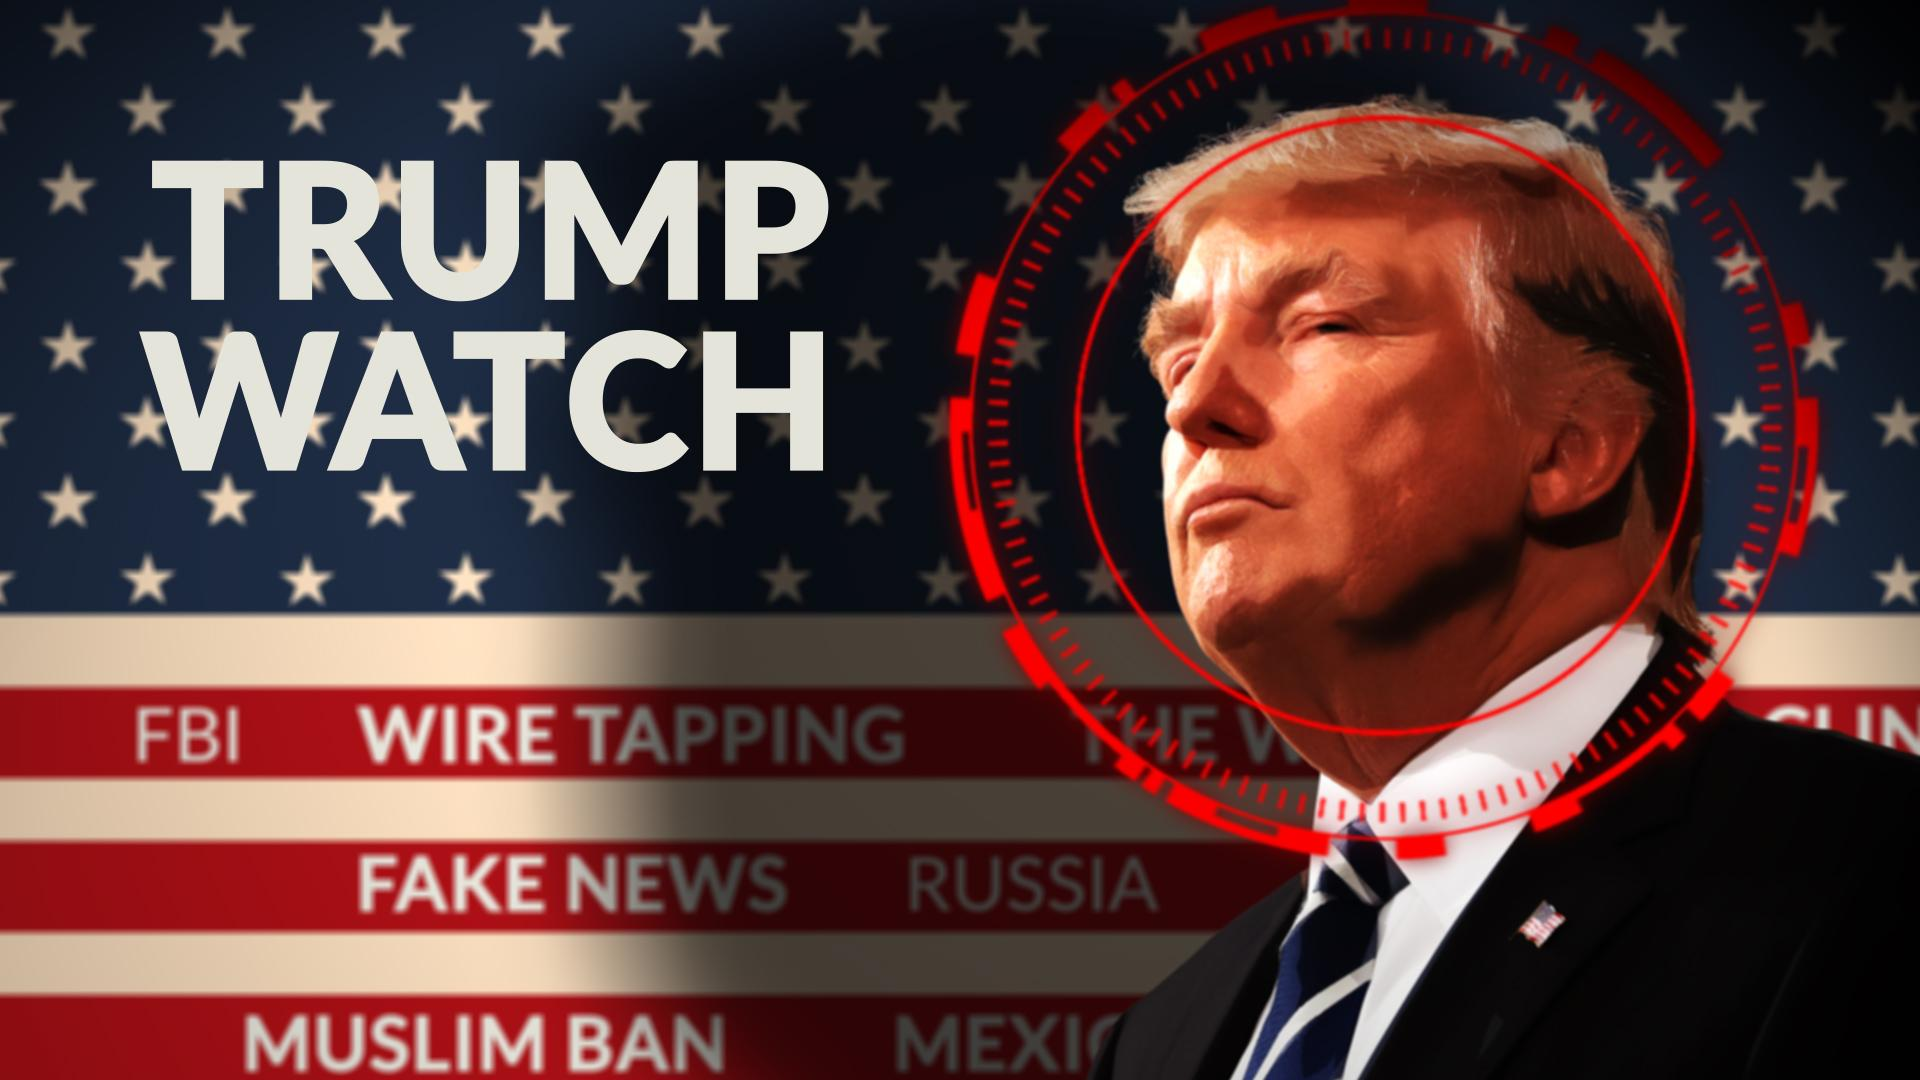 TrumpWatch: 5 Things Donald Trump Tried To Bury Amidst GCHQ Wiretapping Claims